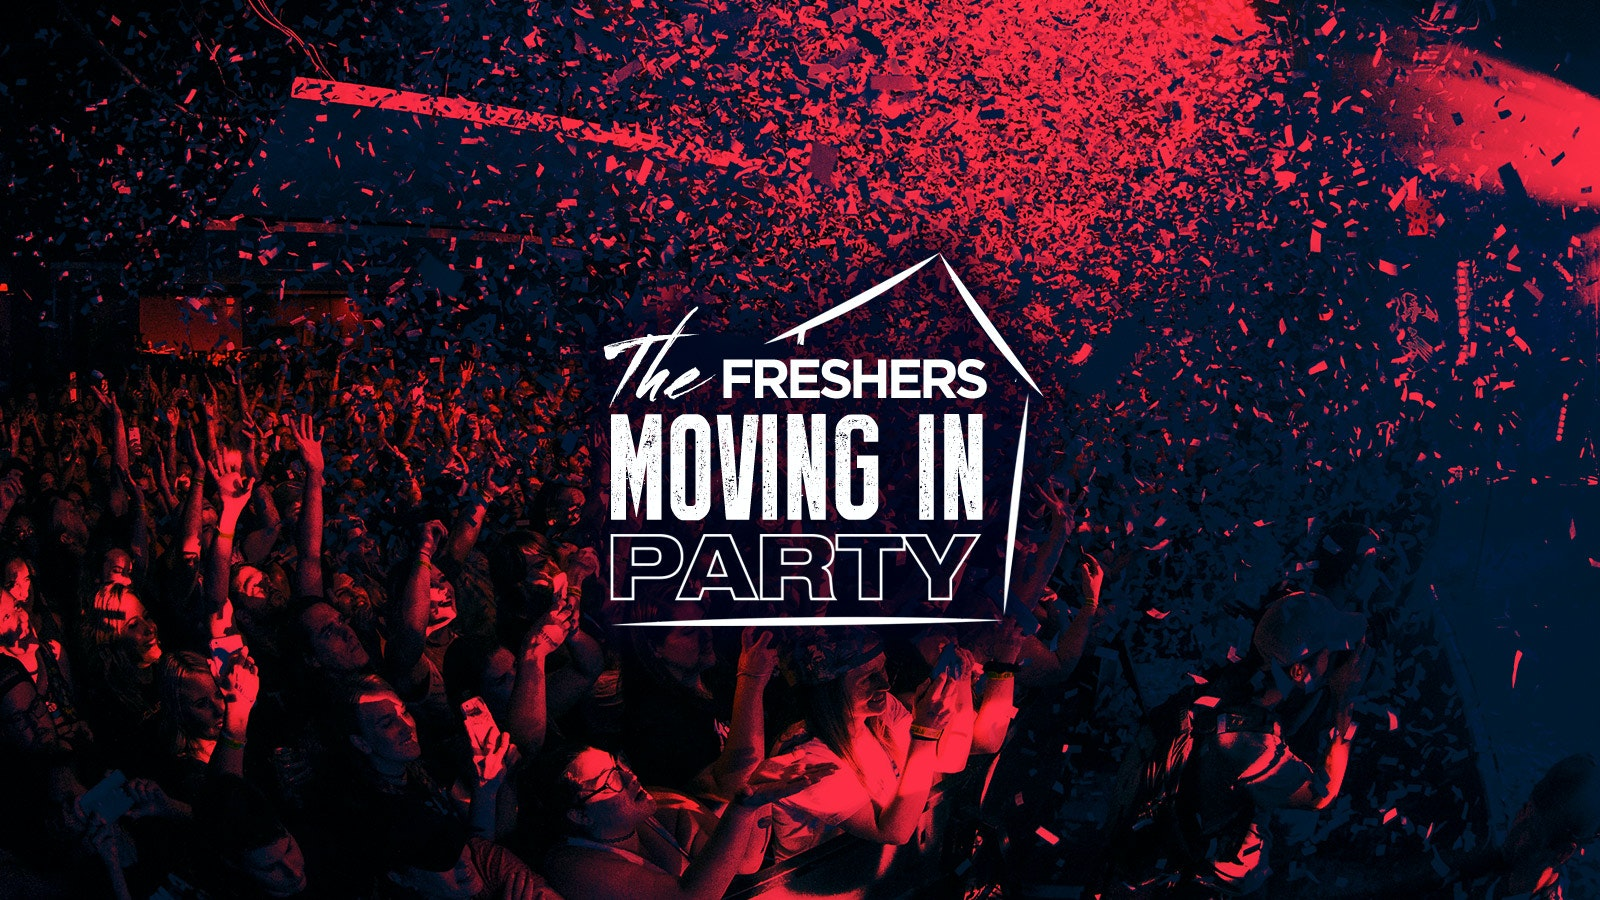 The Moving in Party // Nottingham Freshers 2019